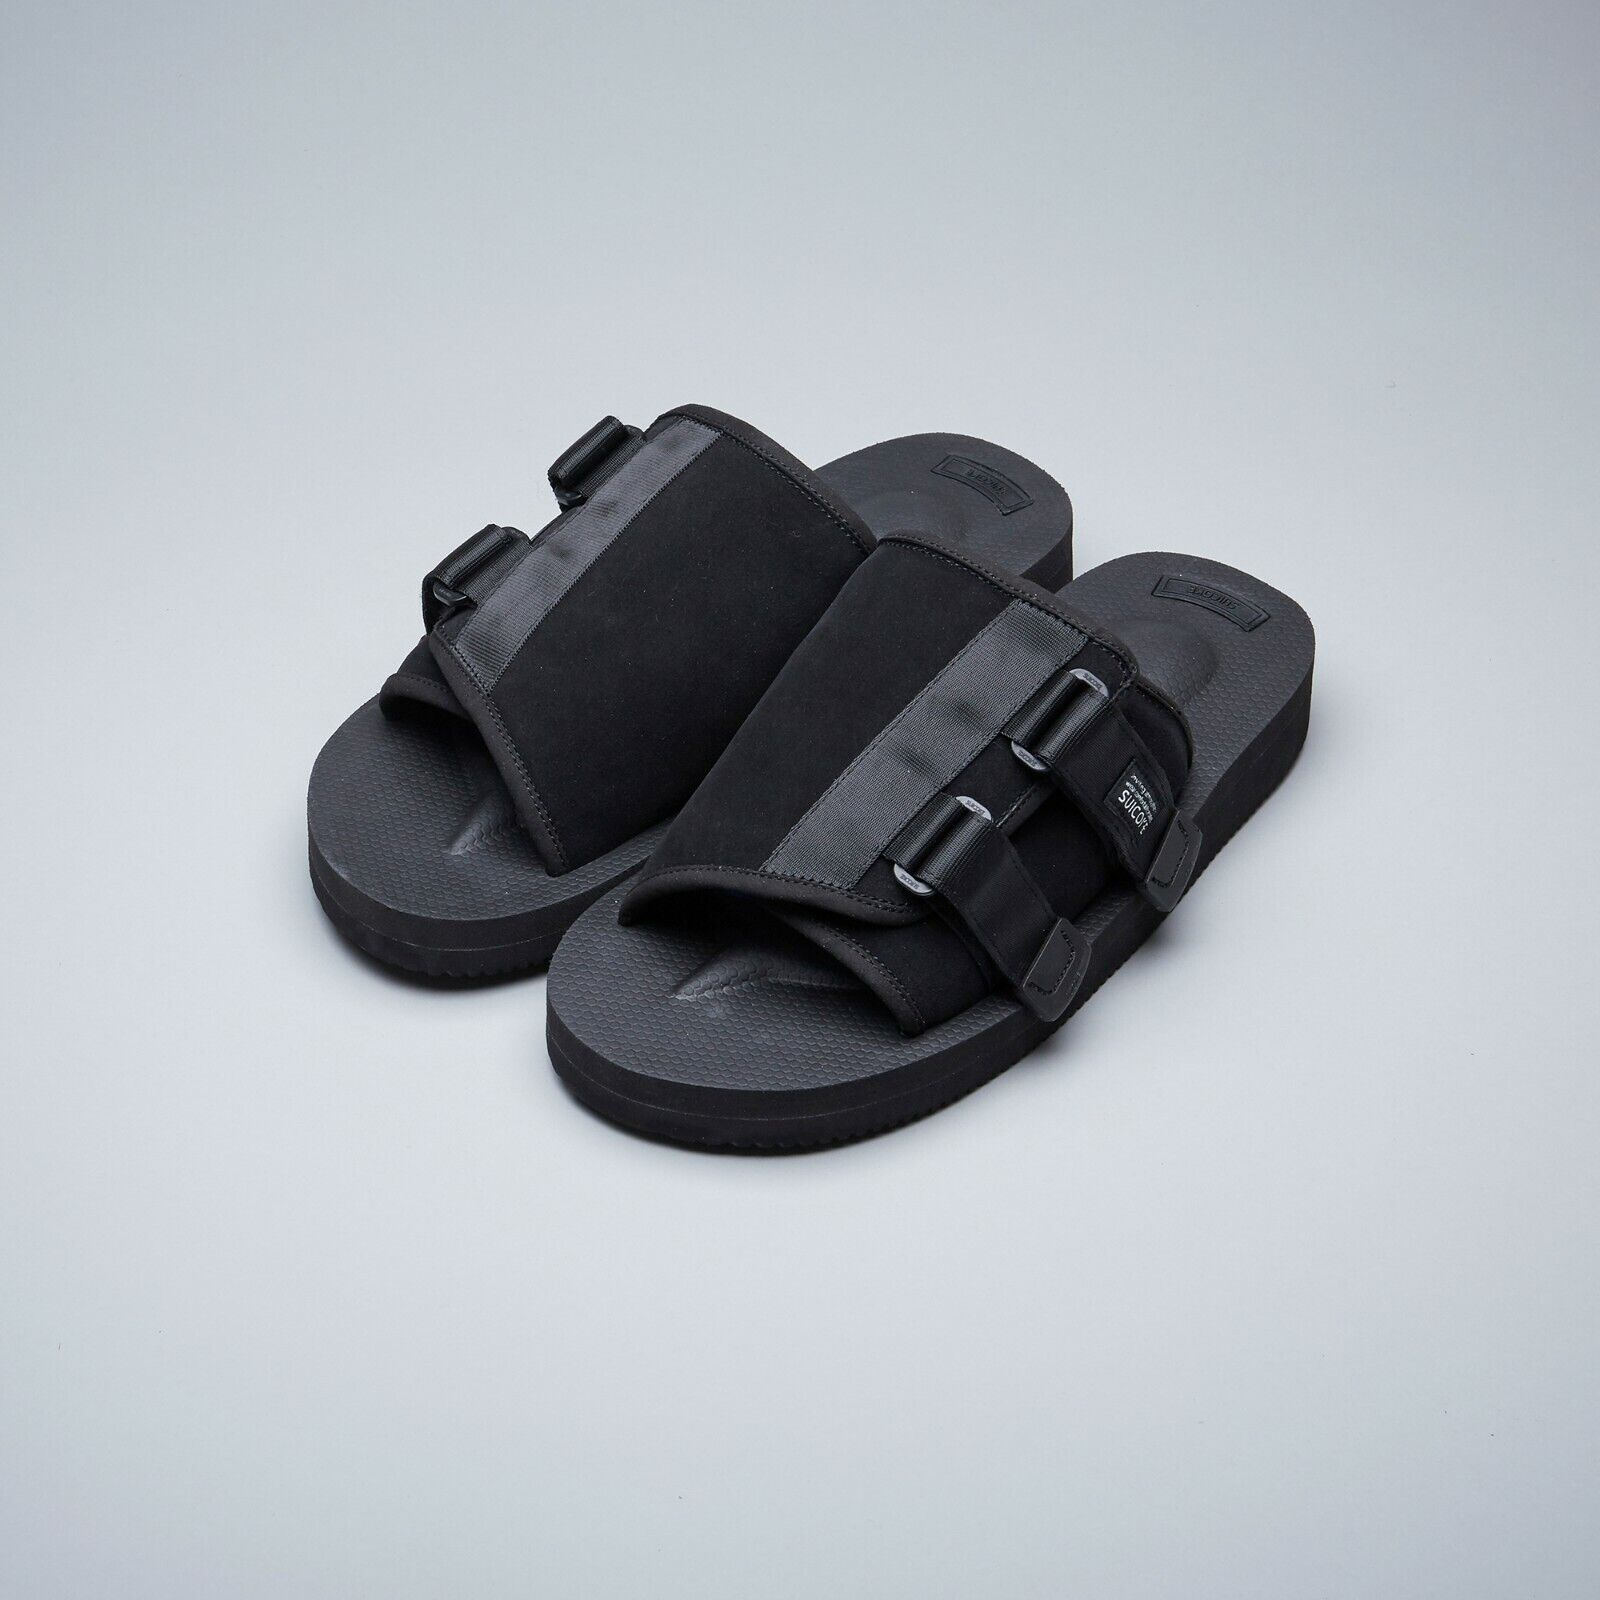 32f77fd335a Suicoke SS19 OG-081VS / KAW-VS Black Vibram Cow Suede Leather Sandals Slides